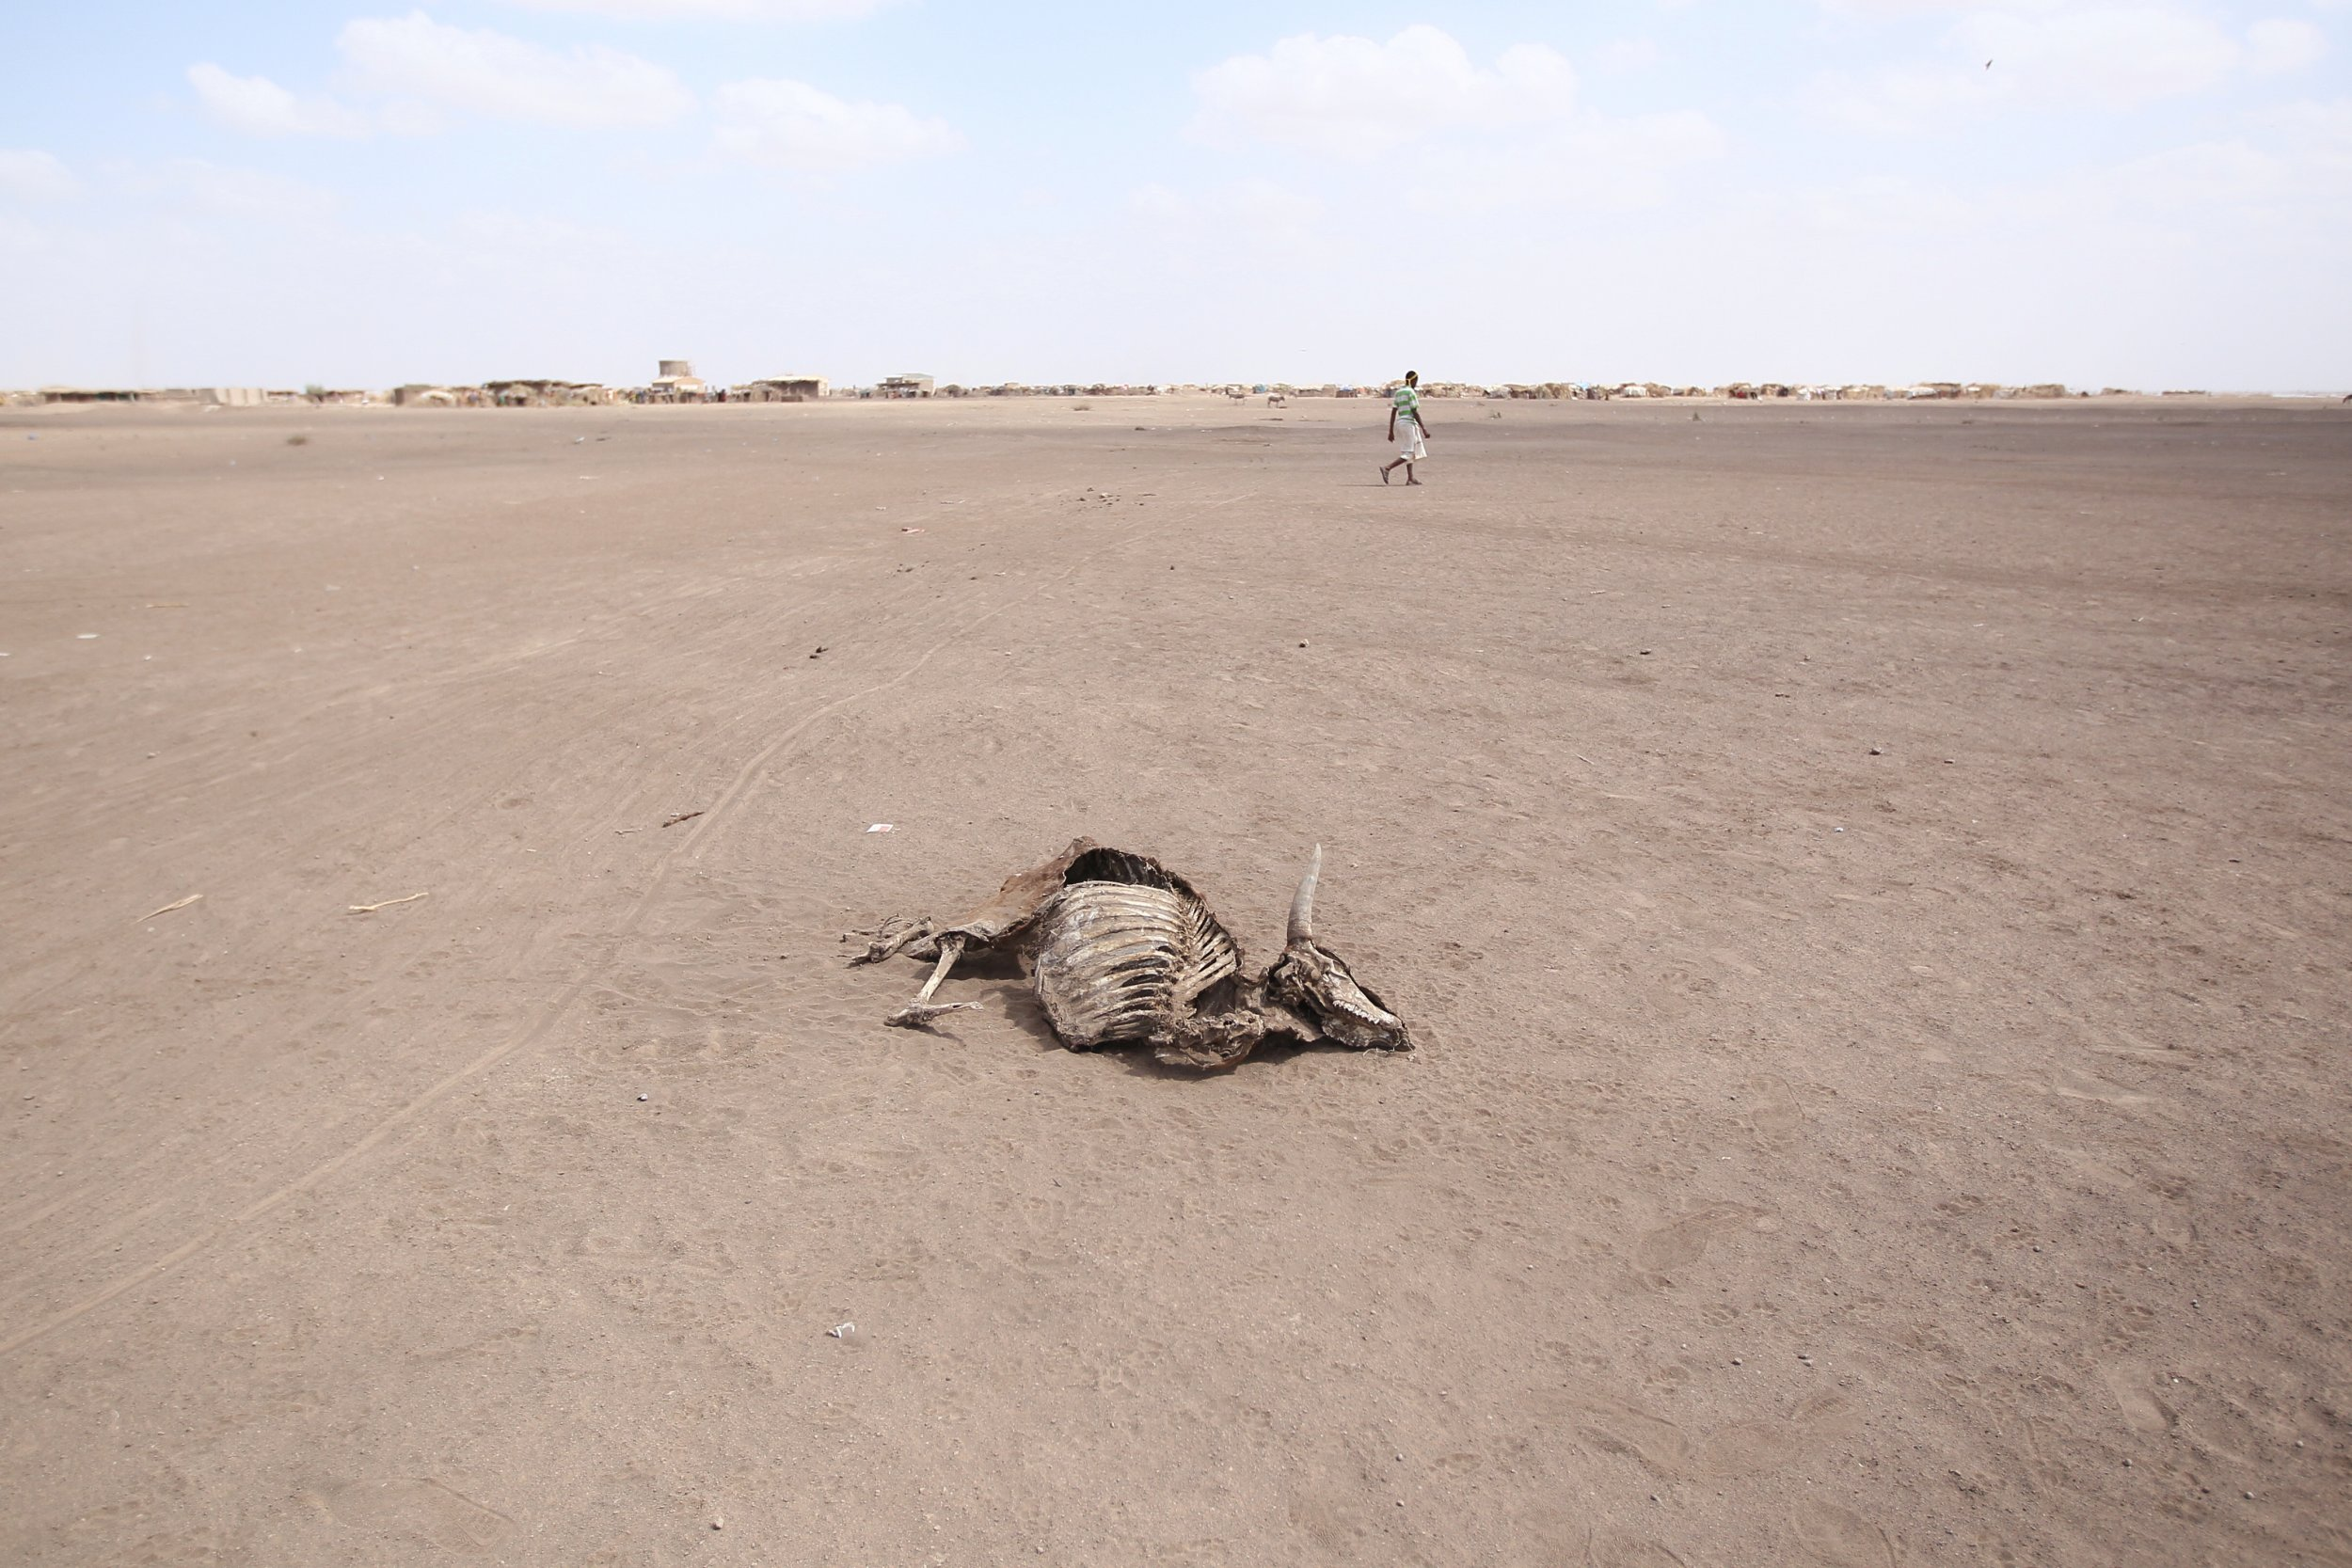 07_01_africa_climate_change_01